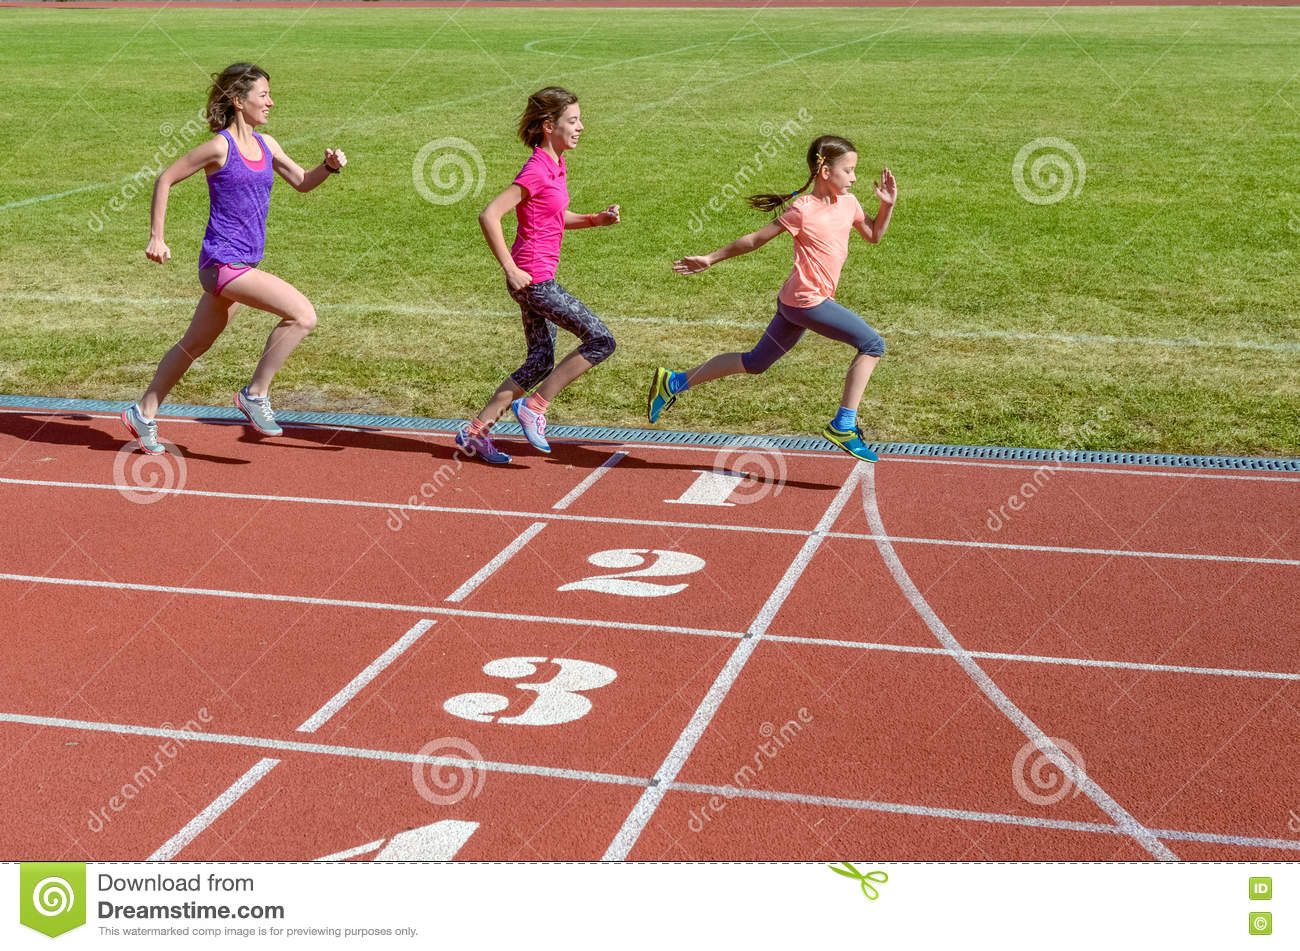 Family sport, mother and kids running on stadium track, training and children fitness